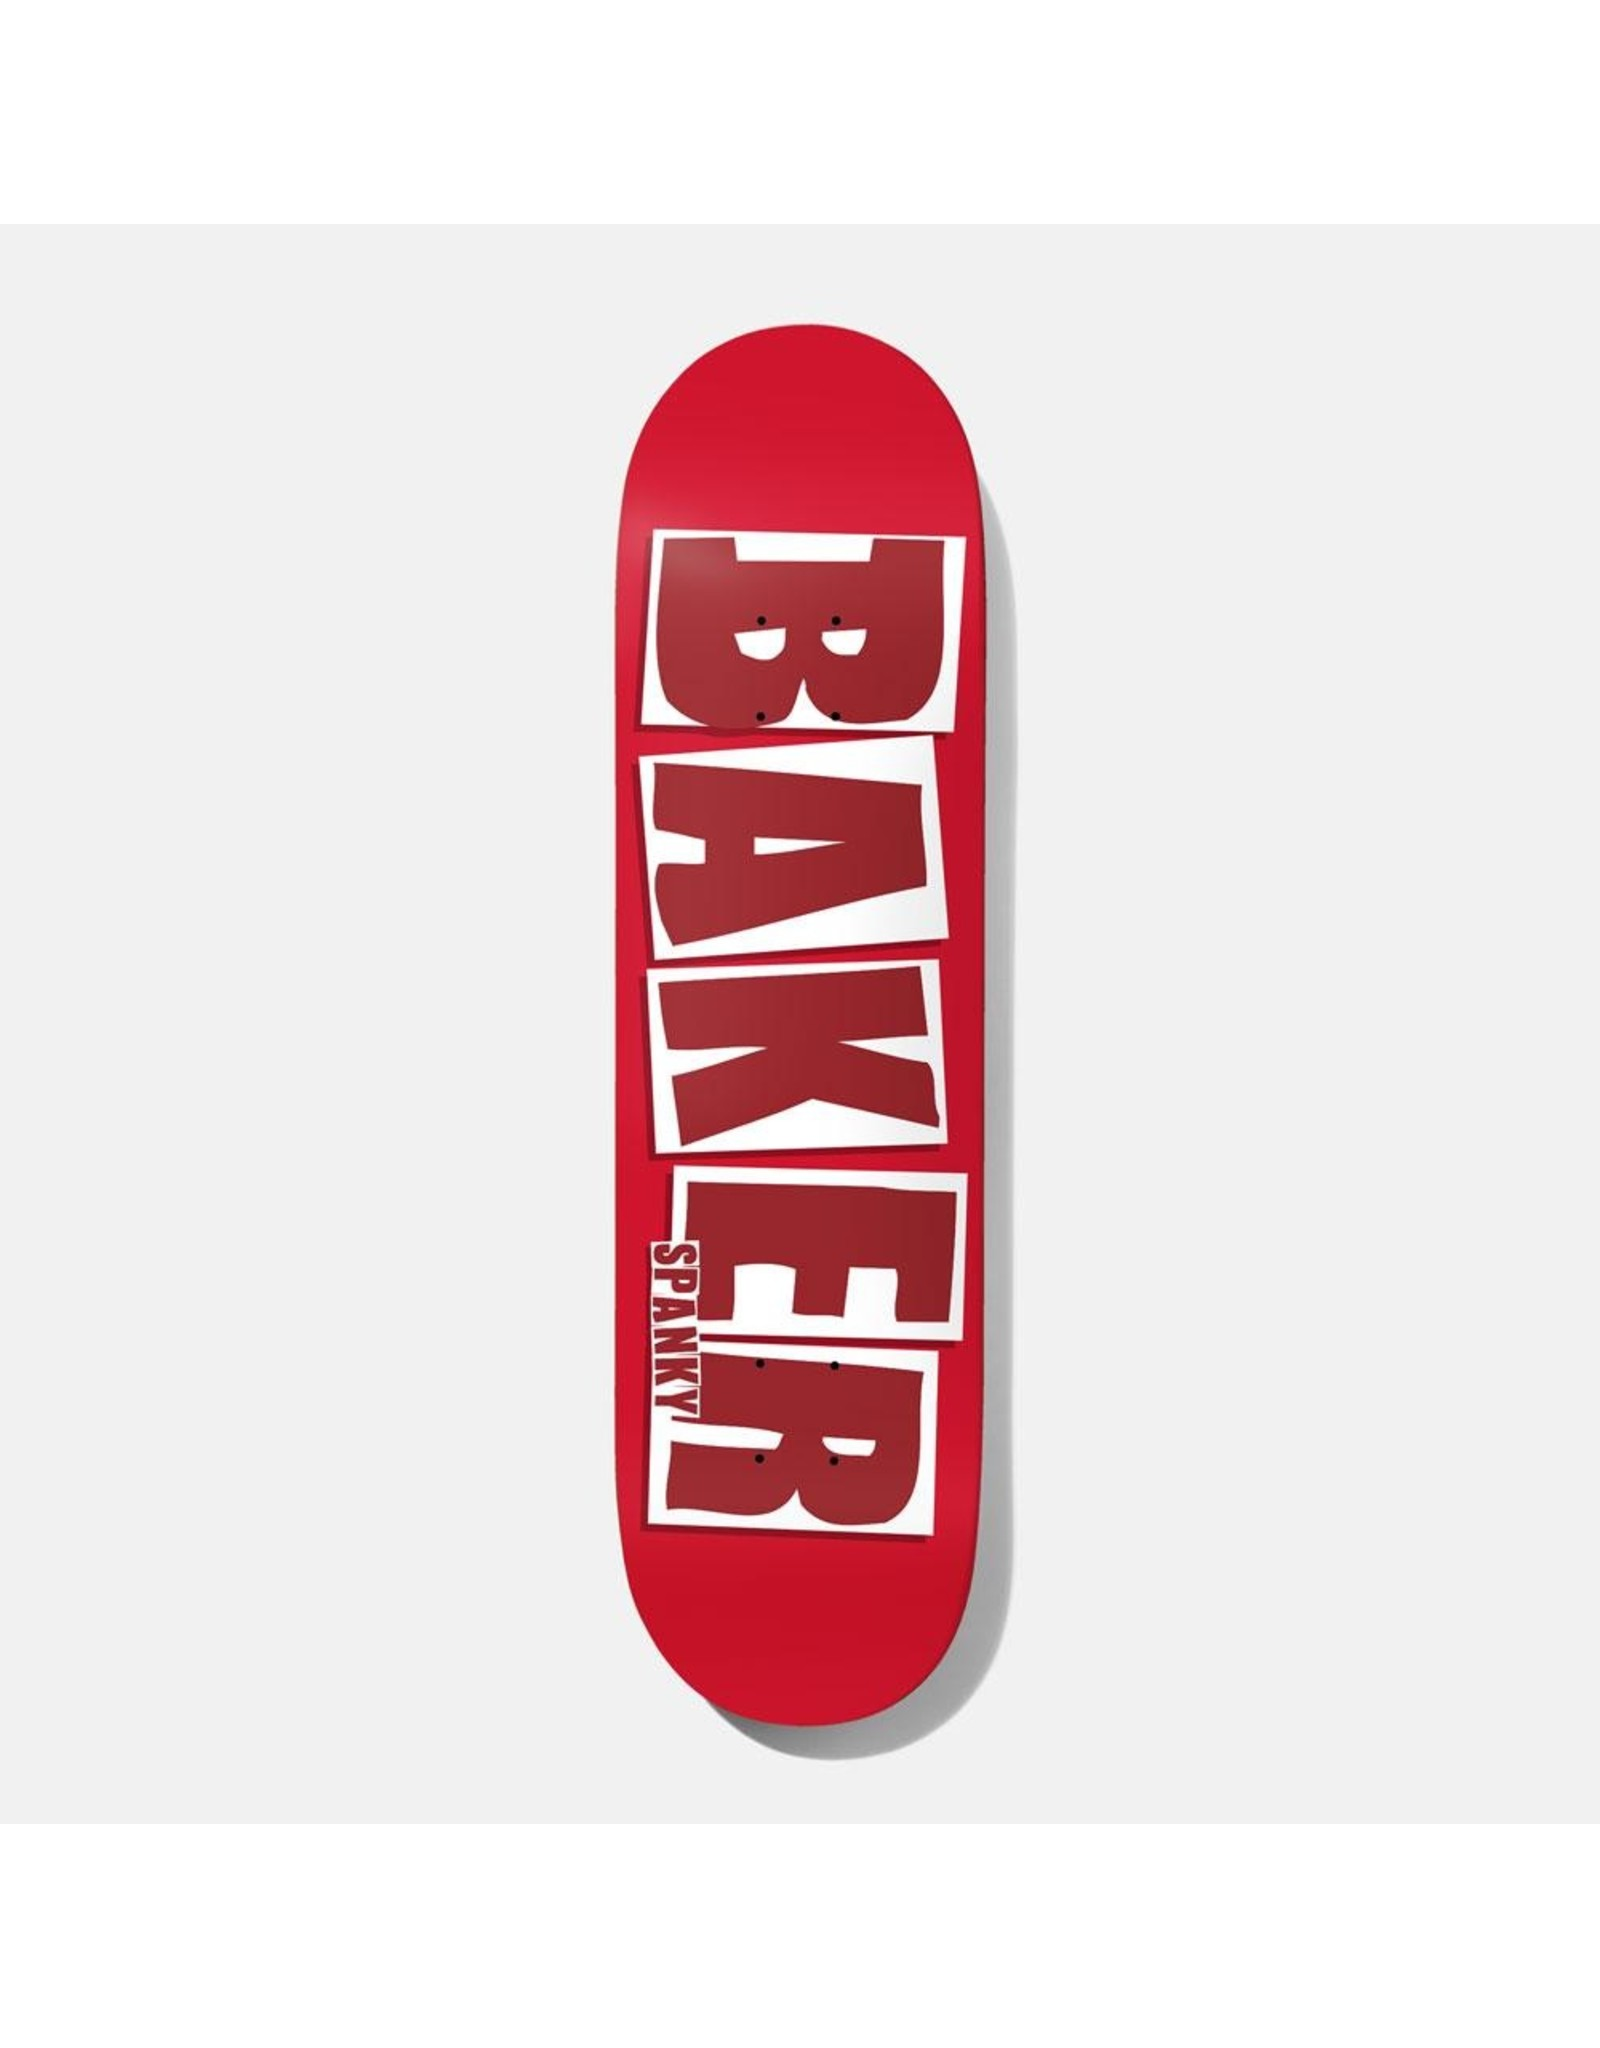 BAKER BAKER - SPANKY BRAND NAME - 8.25 - RED